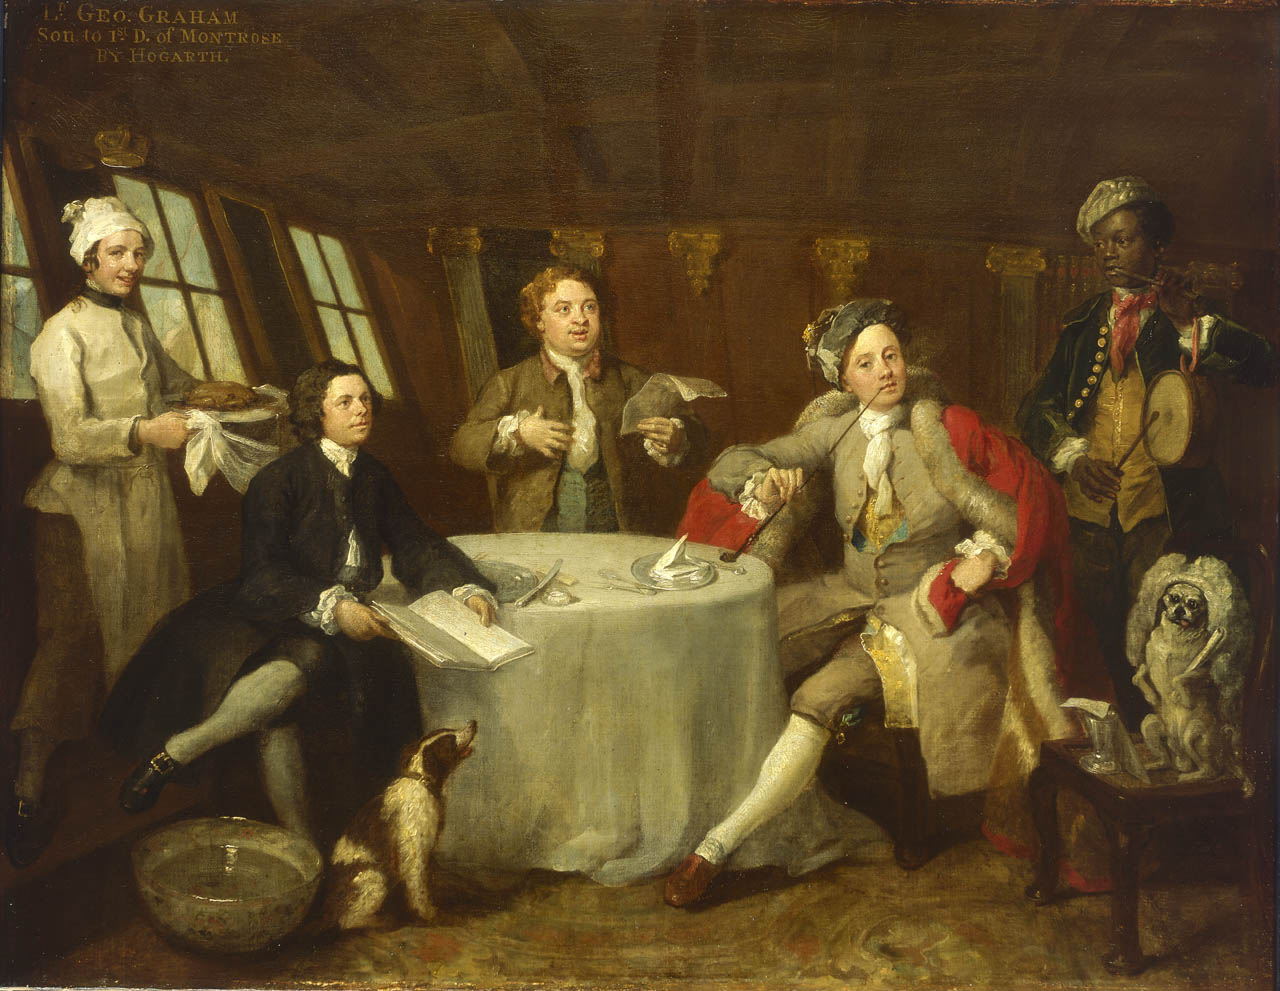 File:Captain Lord George Graham, 1715-47, in his Cabin.jpg